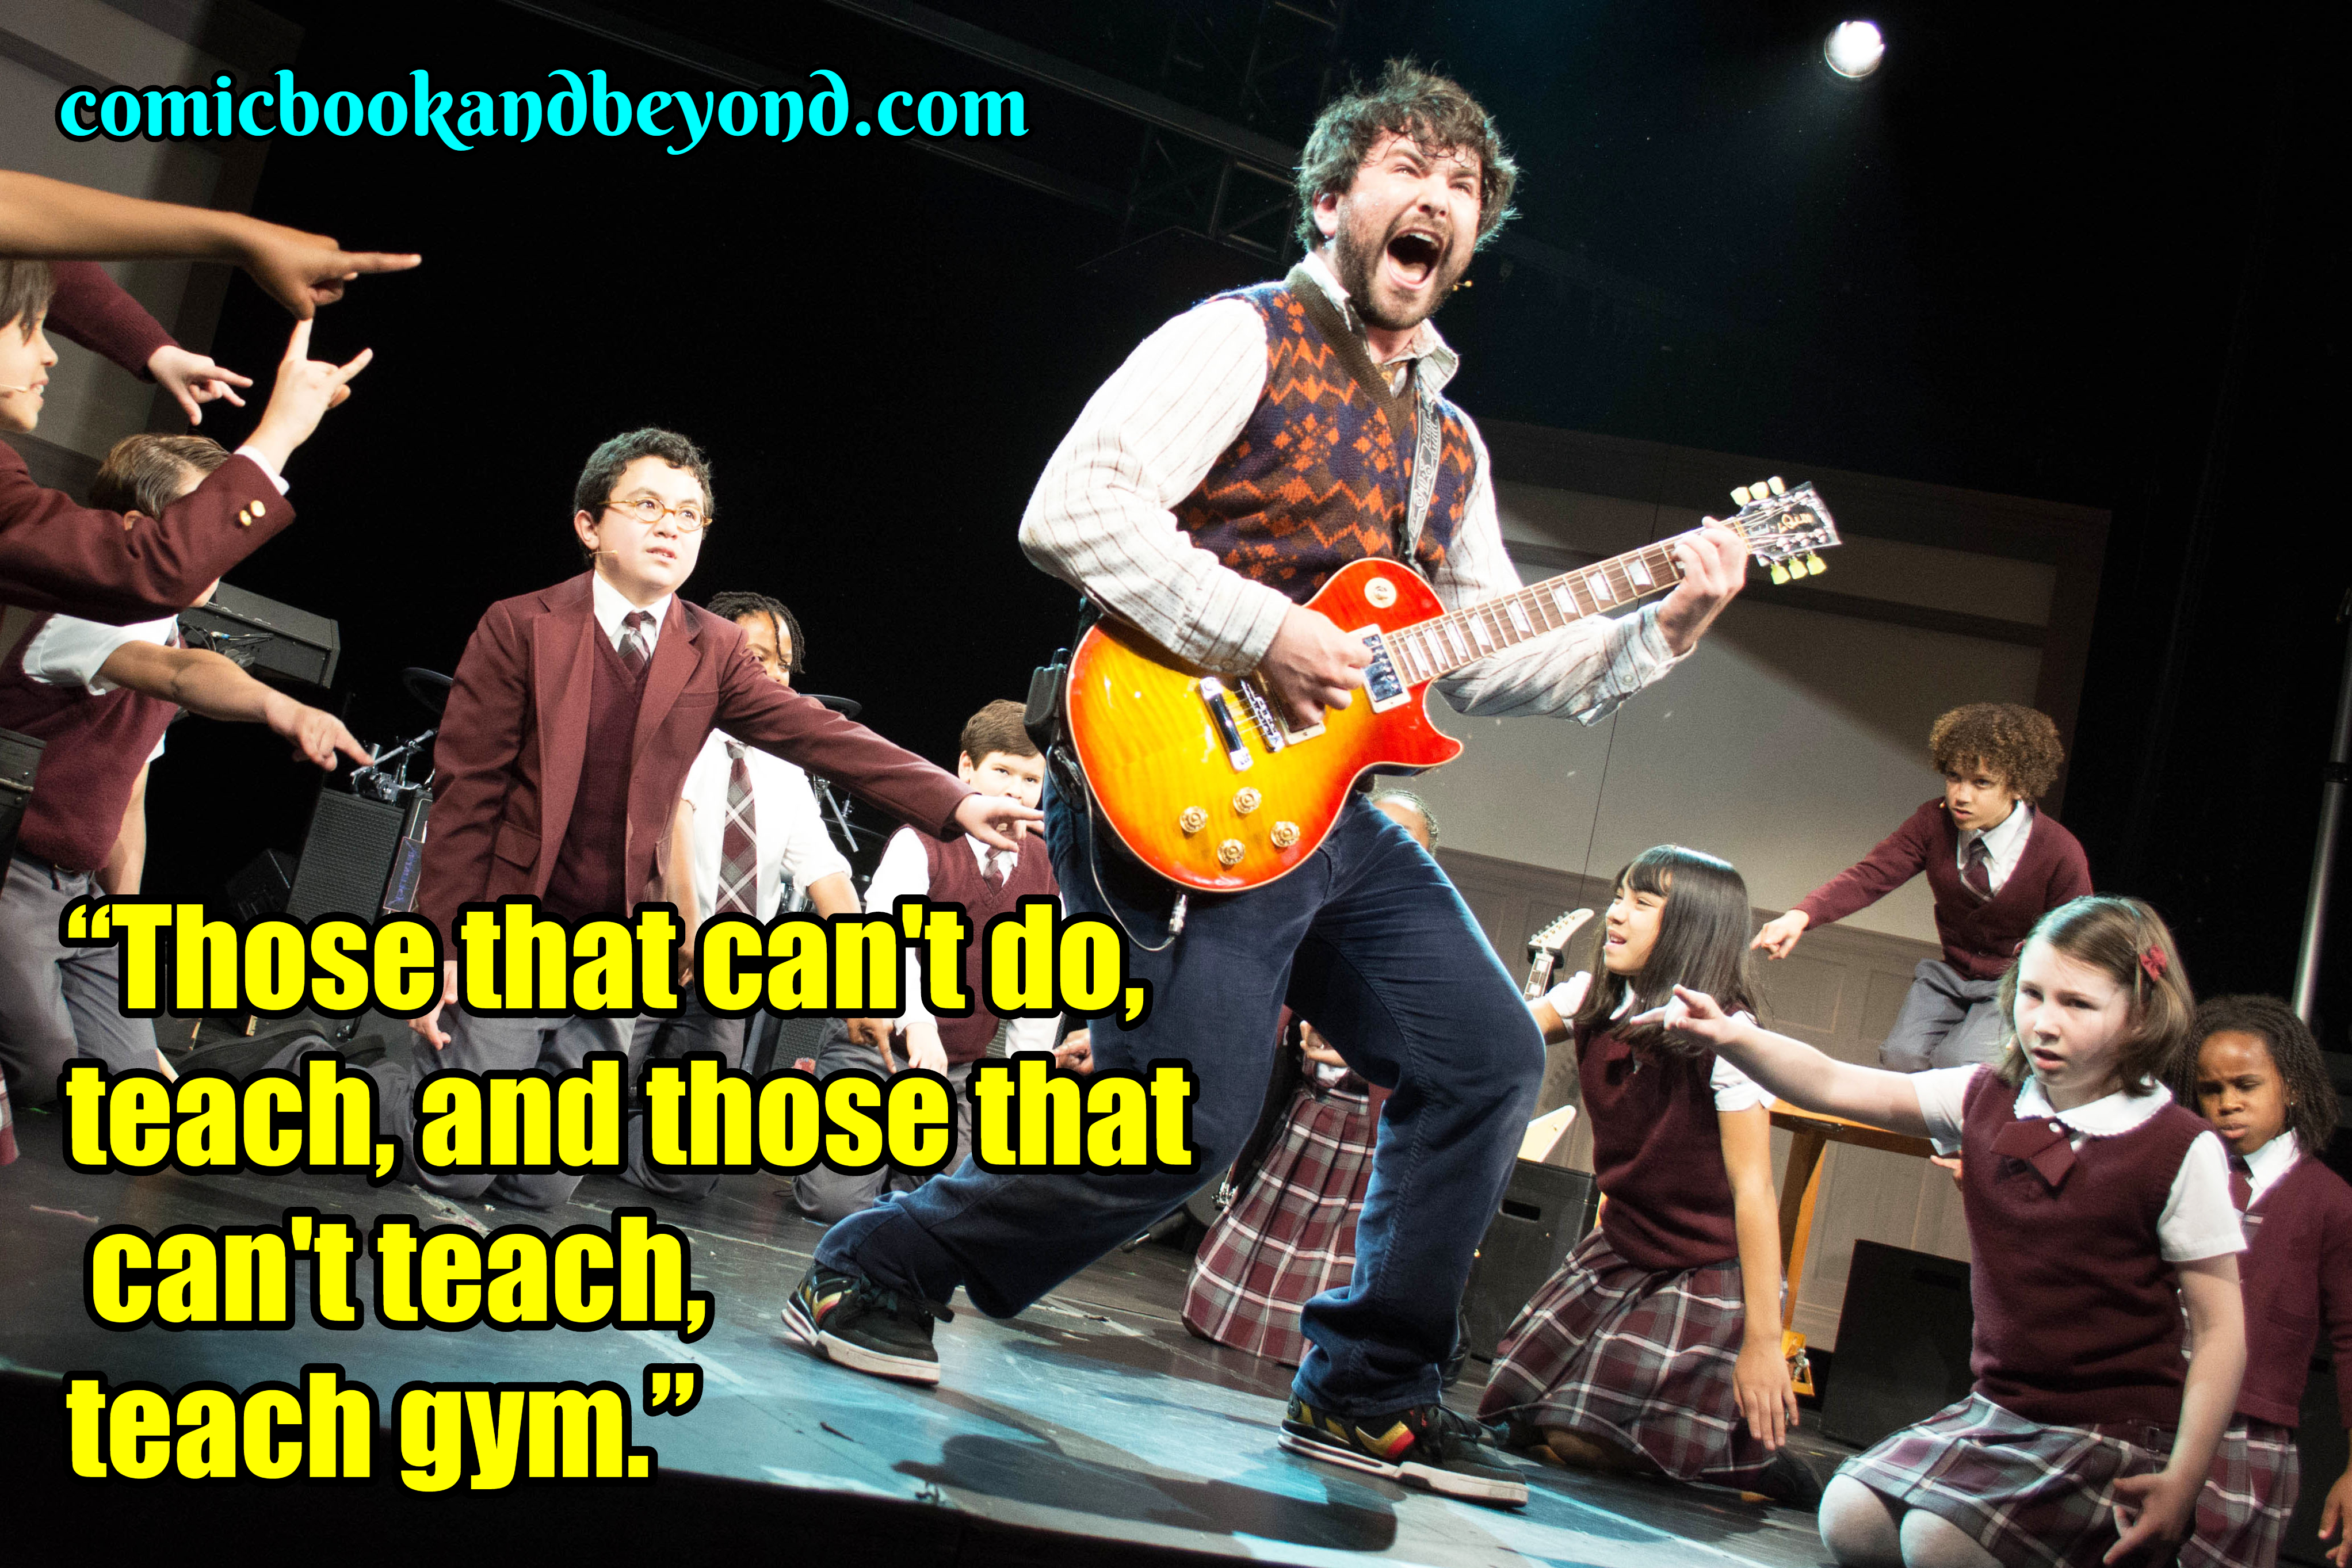 School of Rock famous quotes (2)